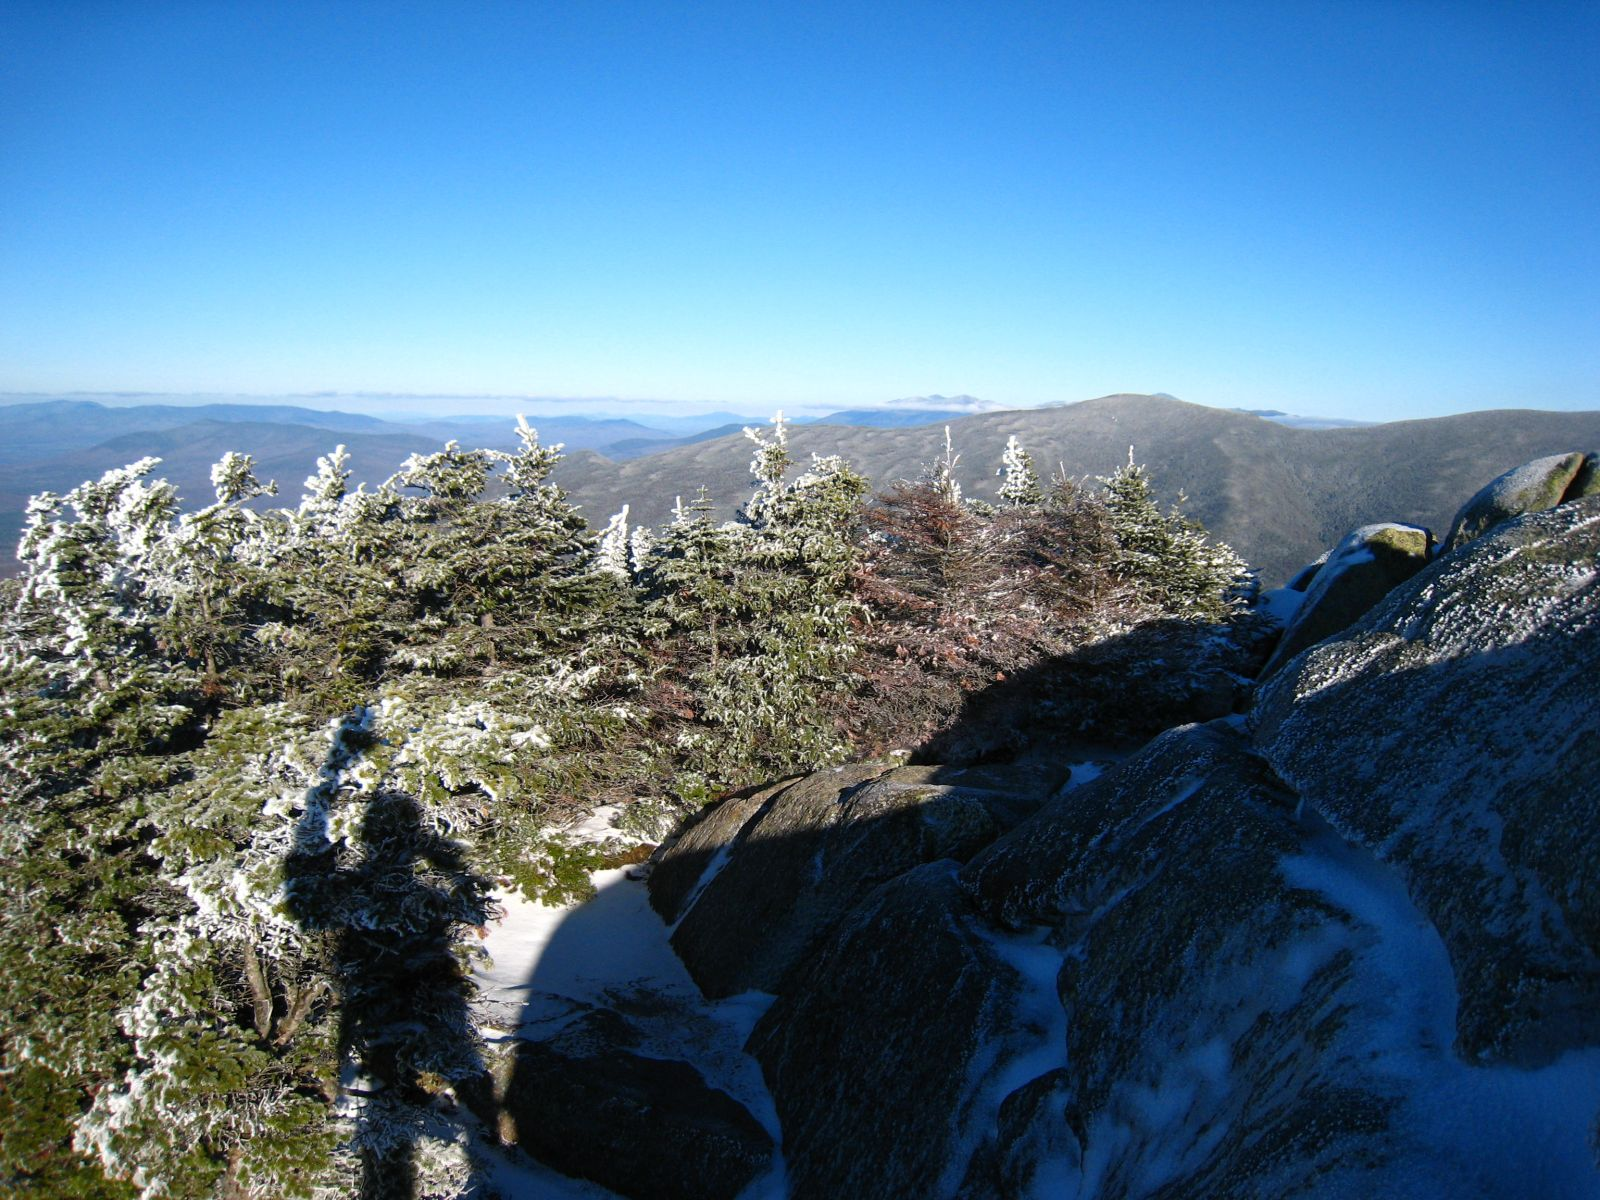 View from the Summit of Mt. Garfield with a Hello Shadow